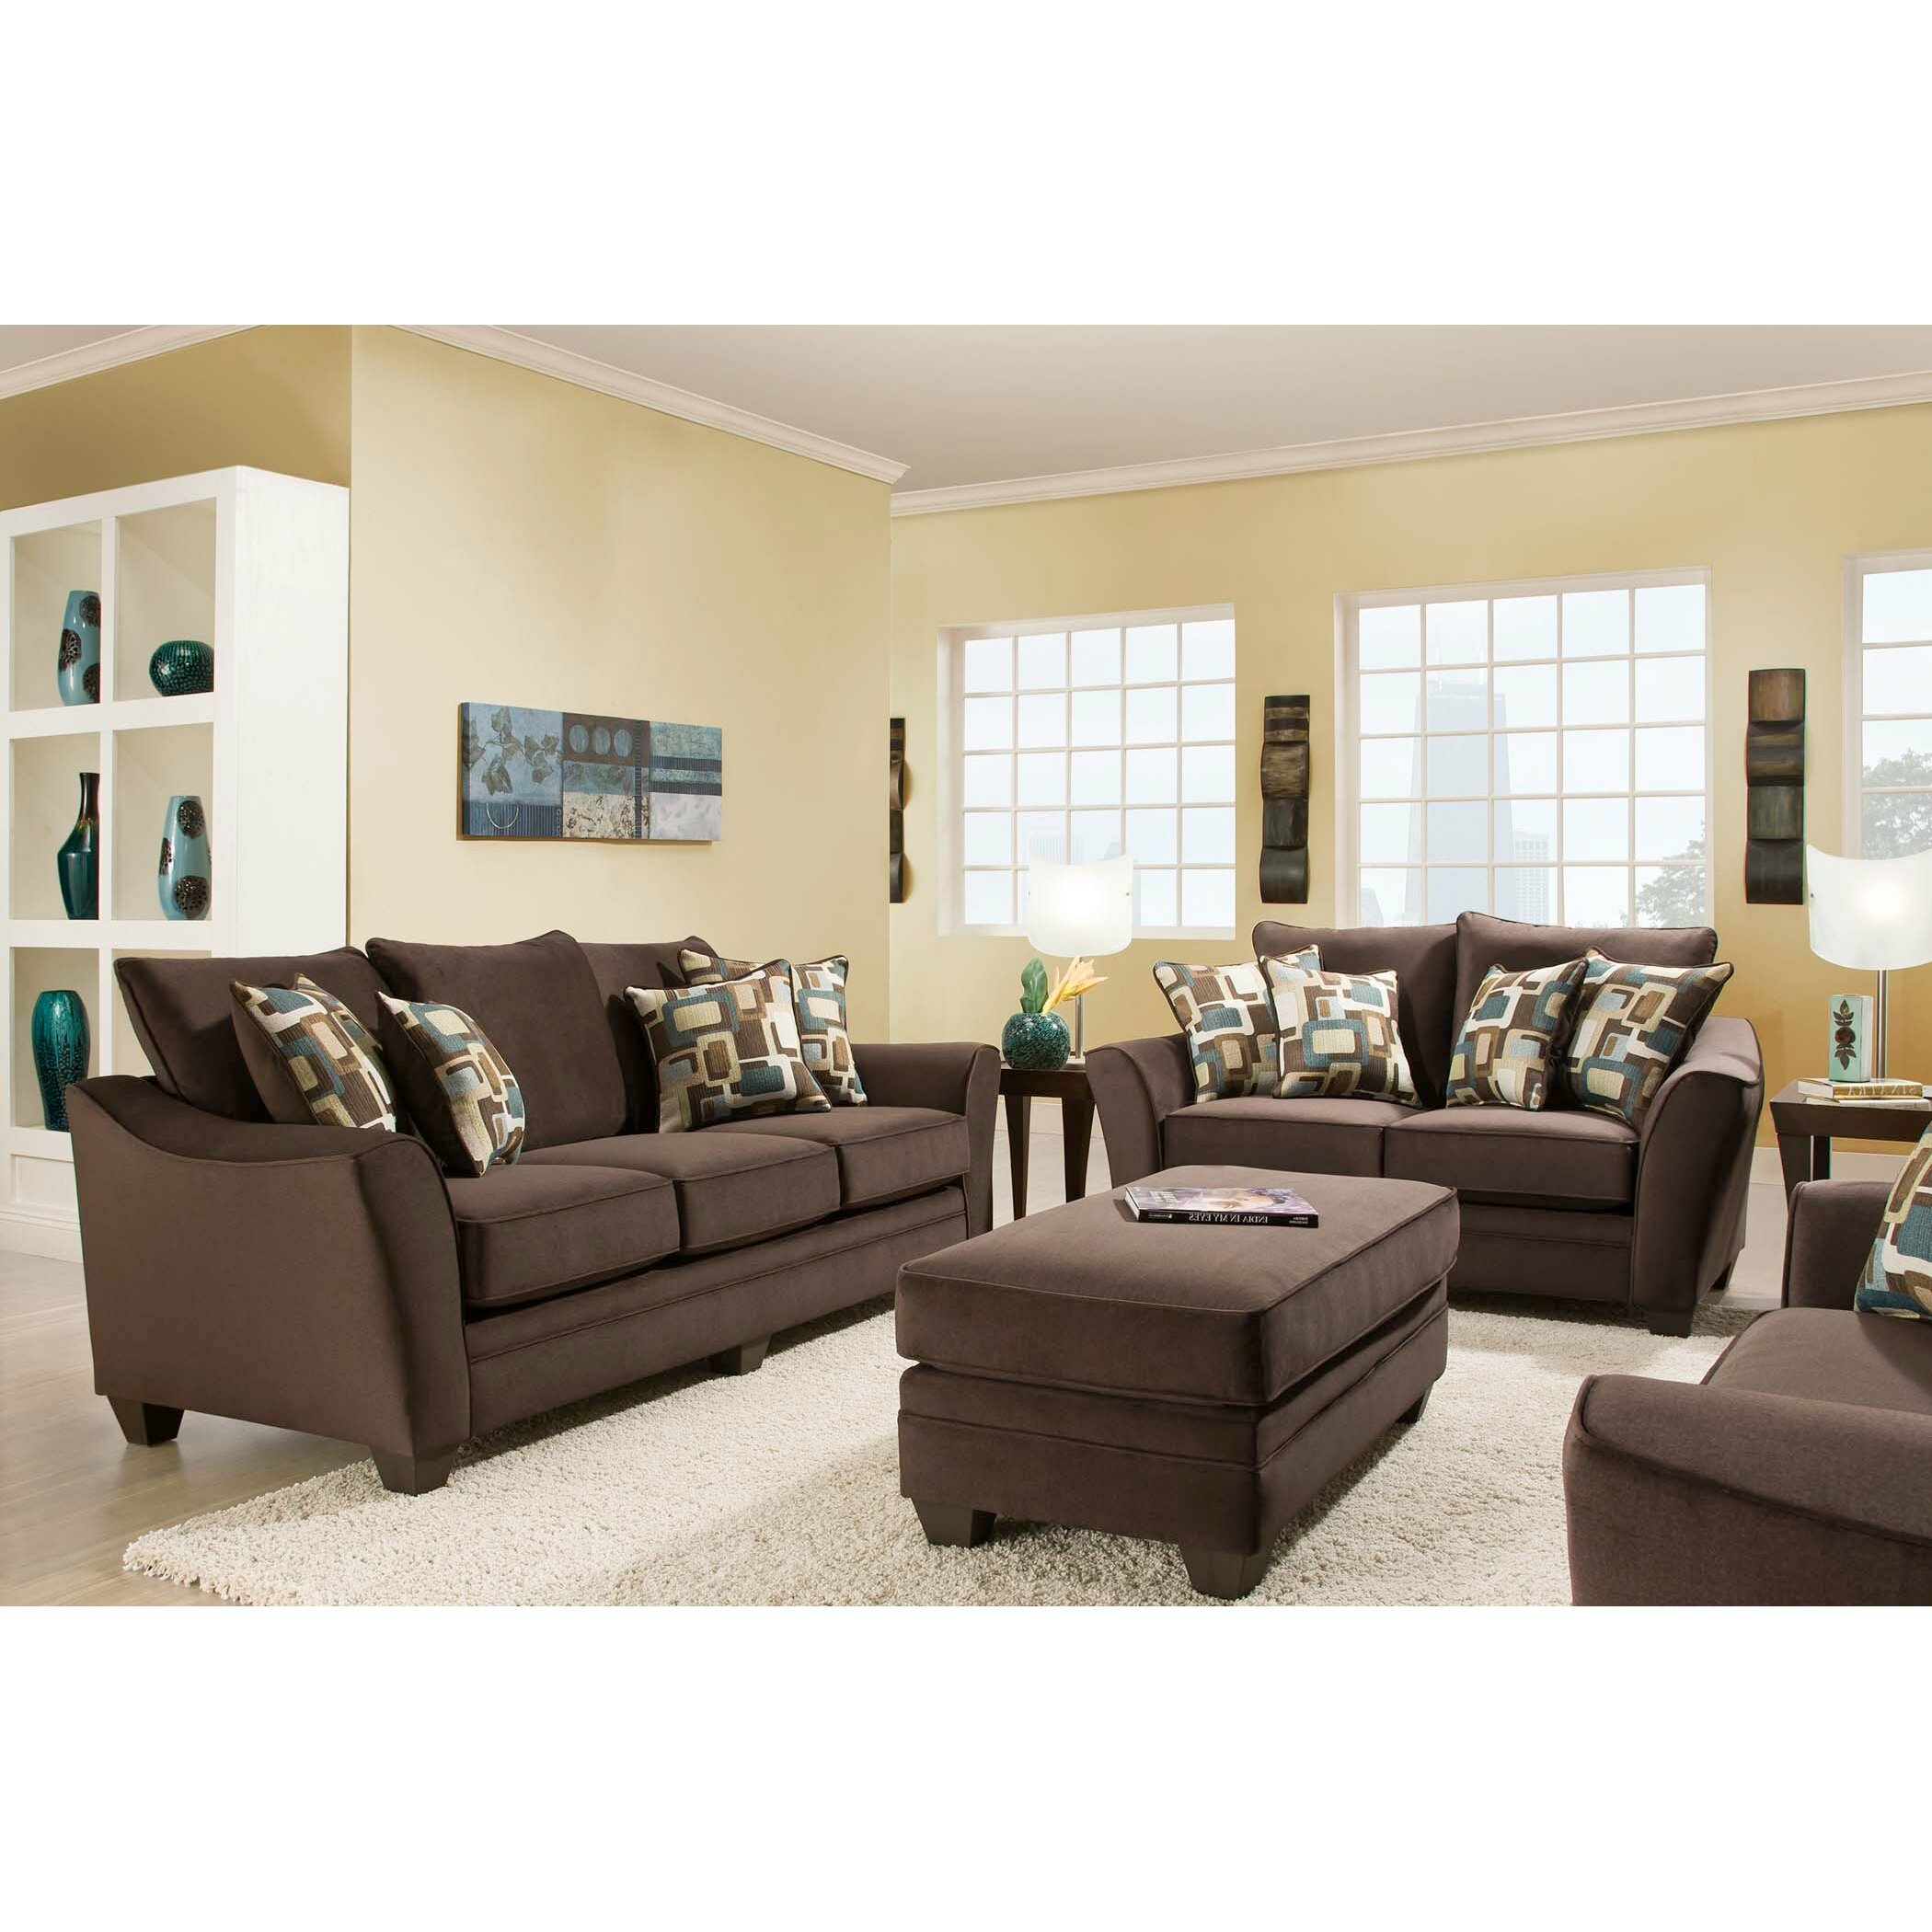 Chelsea Home Cupertino Living Room Collection Reviews Wayfair